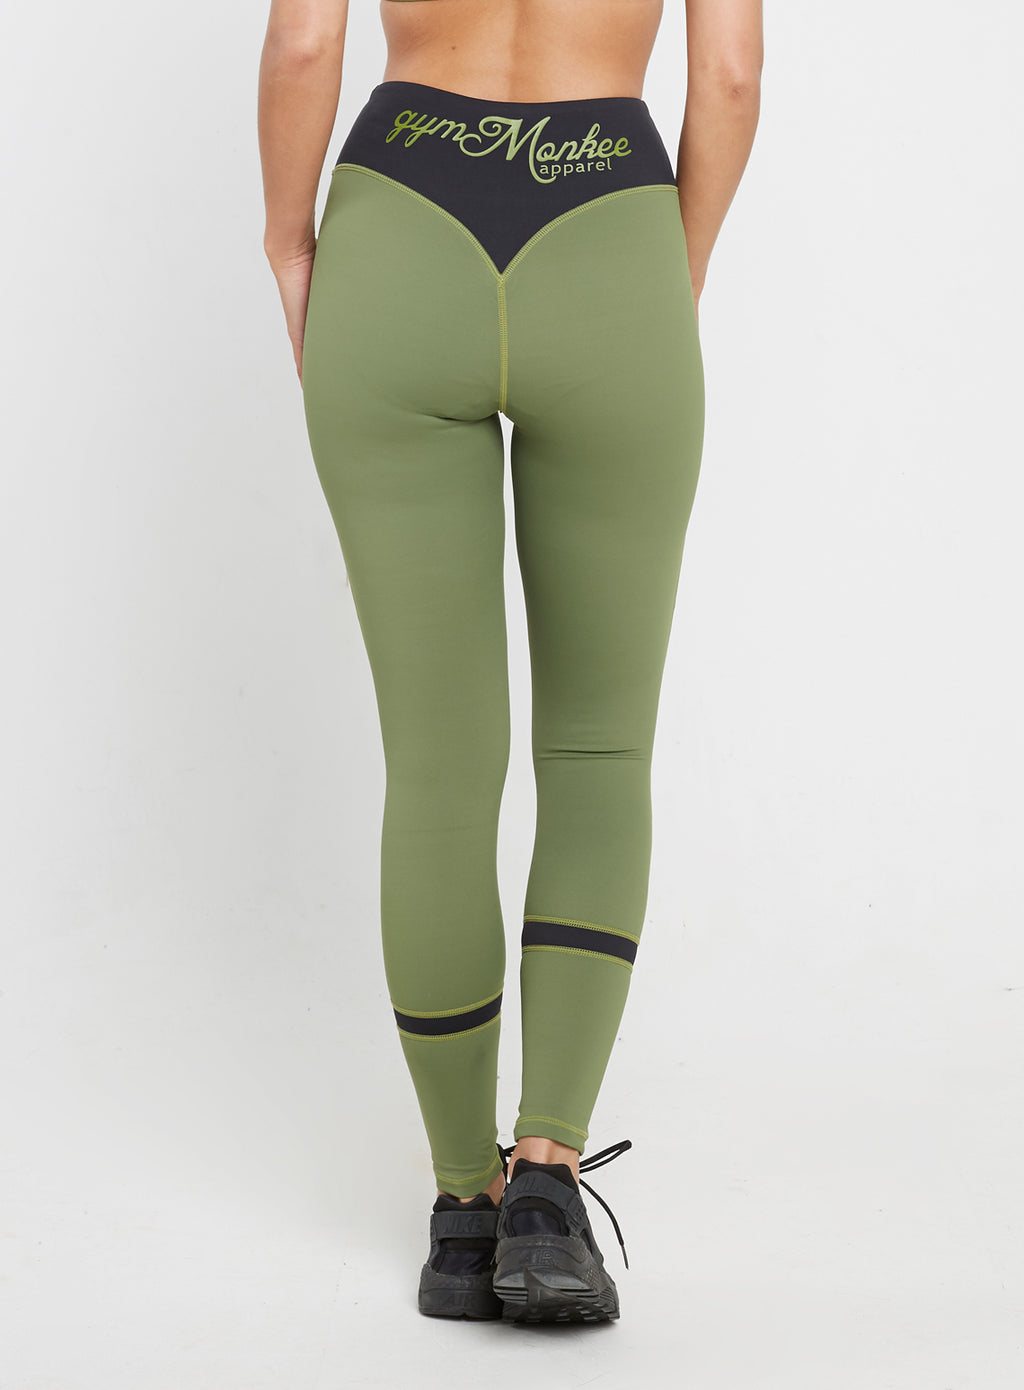 Gym Monkee - Ladies Black and Khaki Leggings REAR